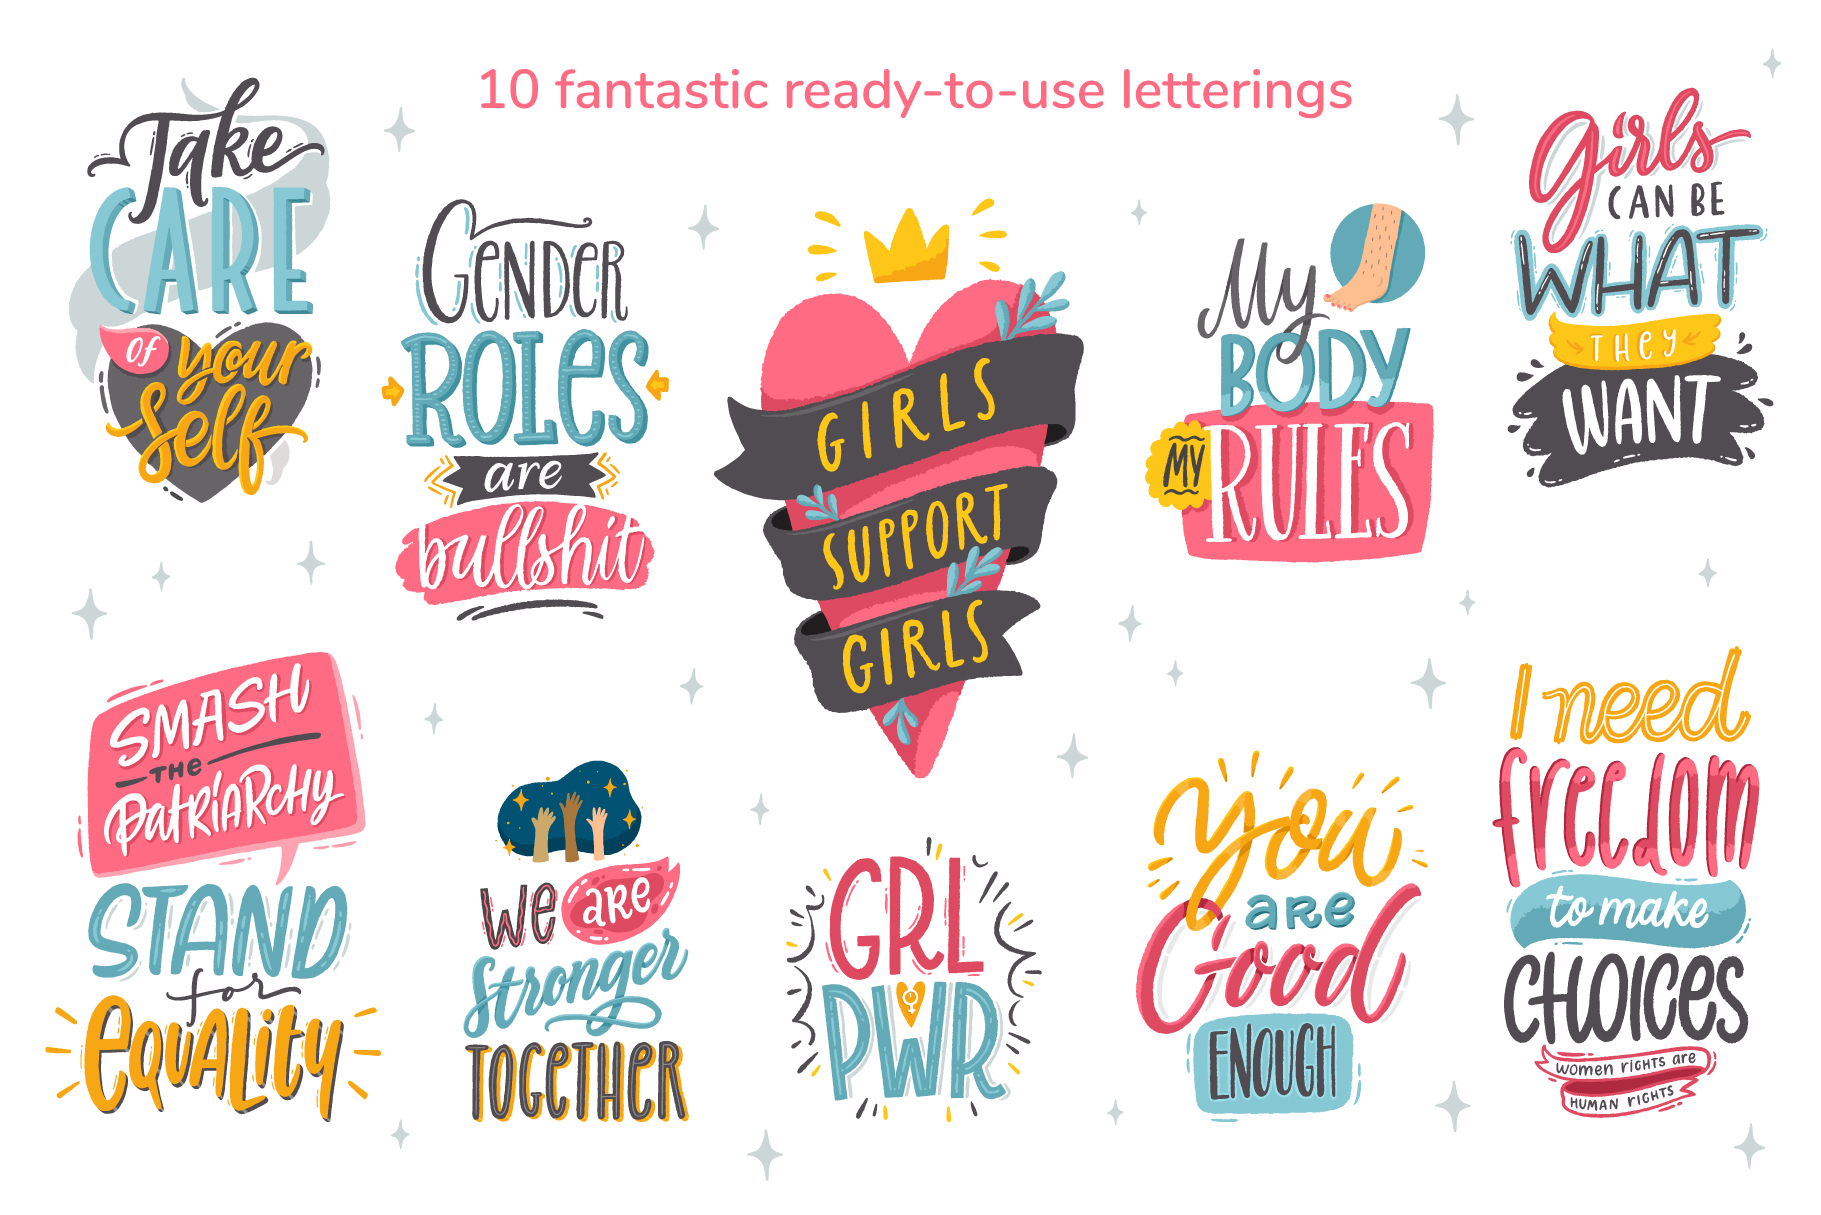 Feminism, vector letterings and graphics example image 2